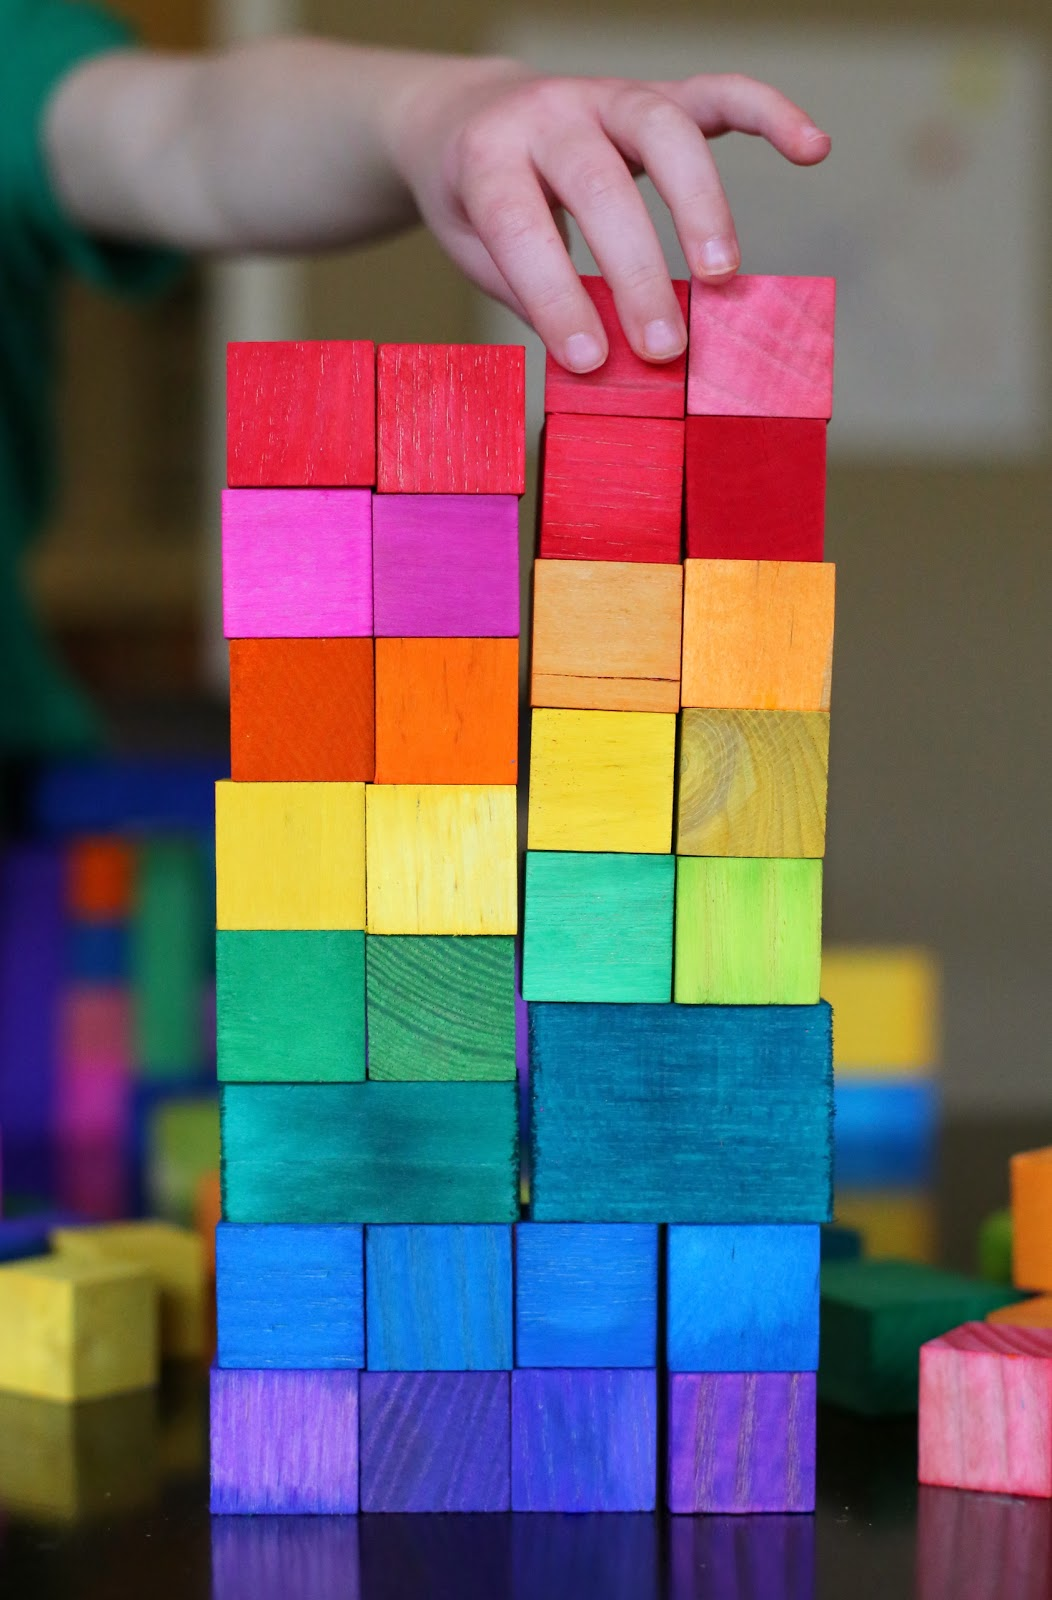 Dyed Wooden Blocks